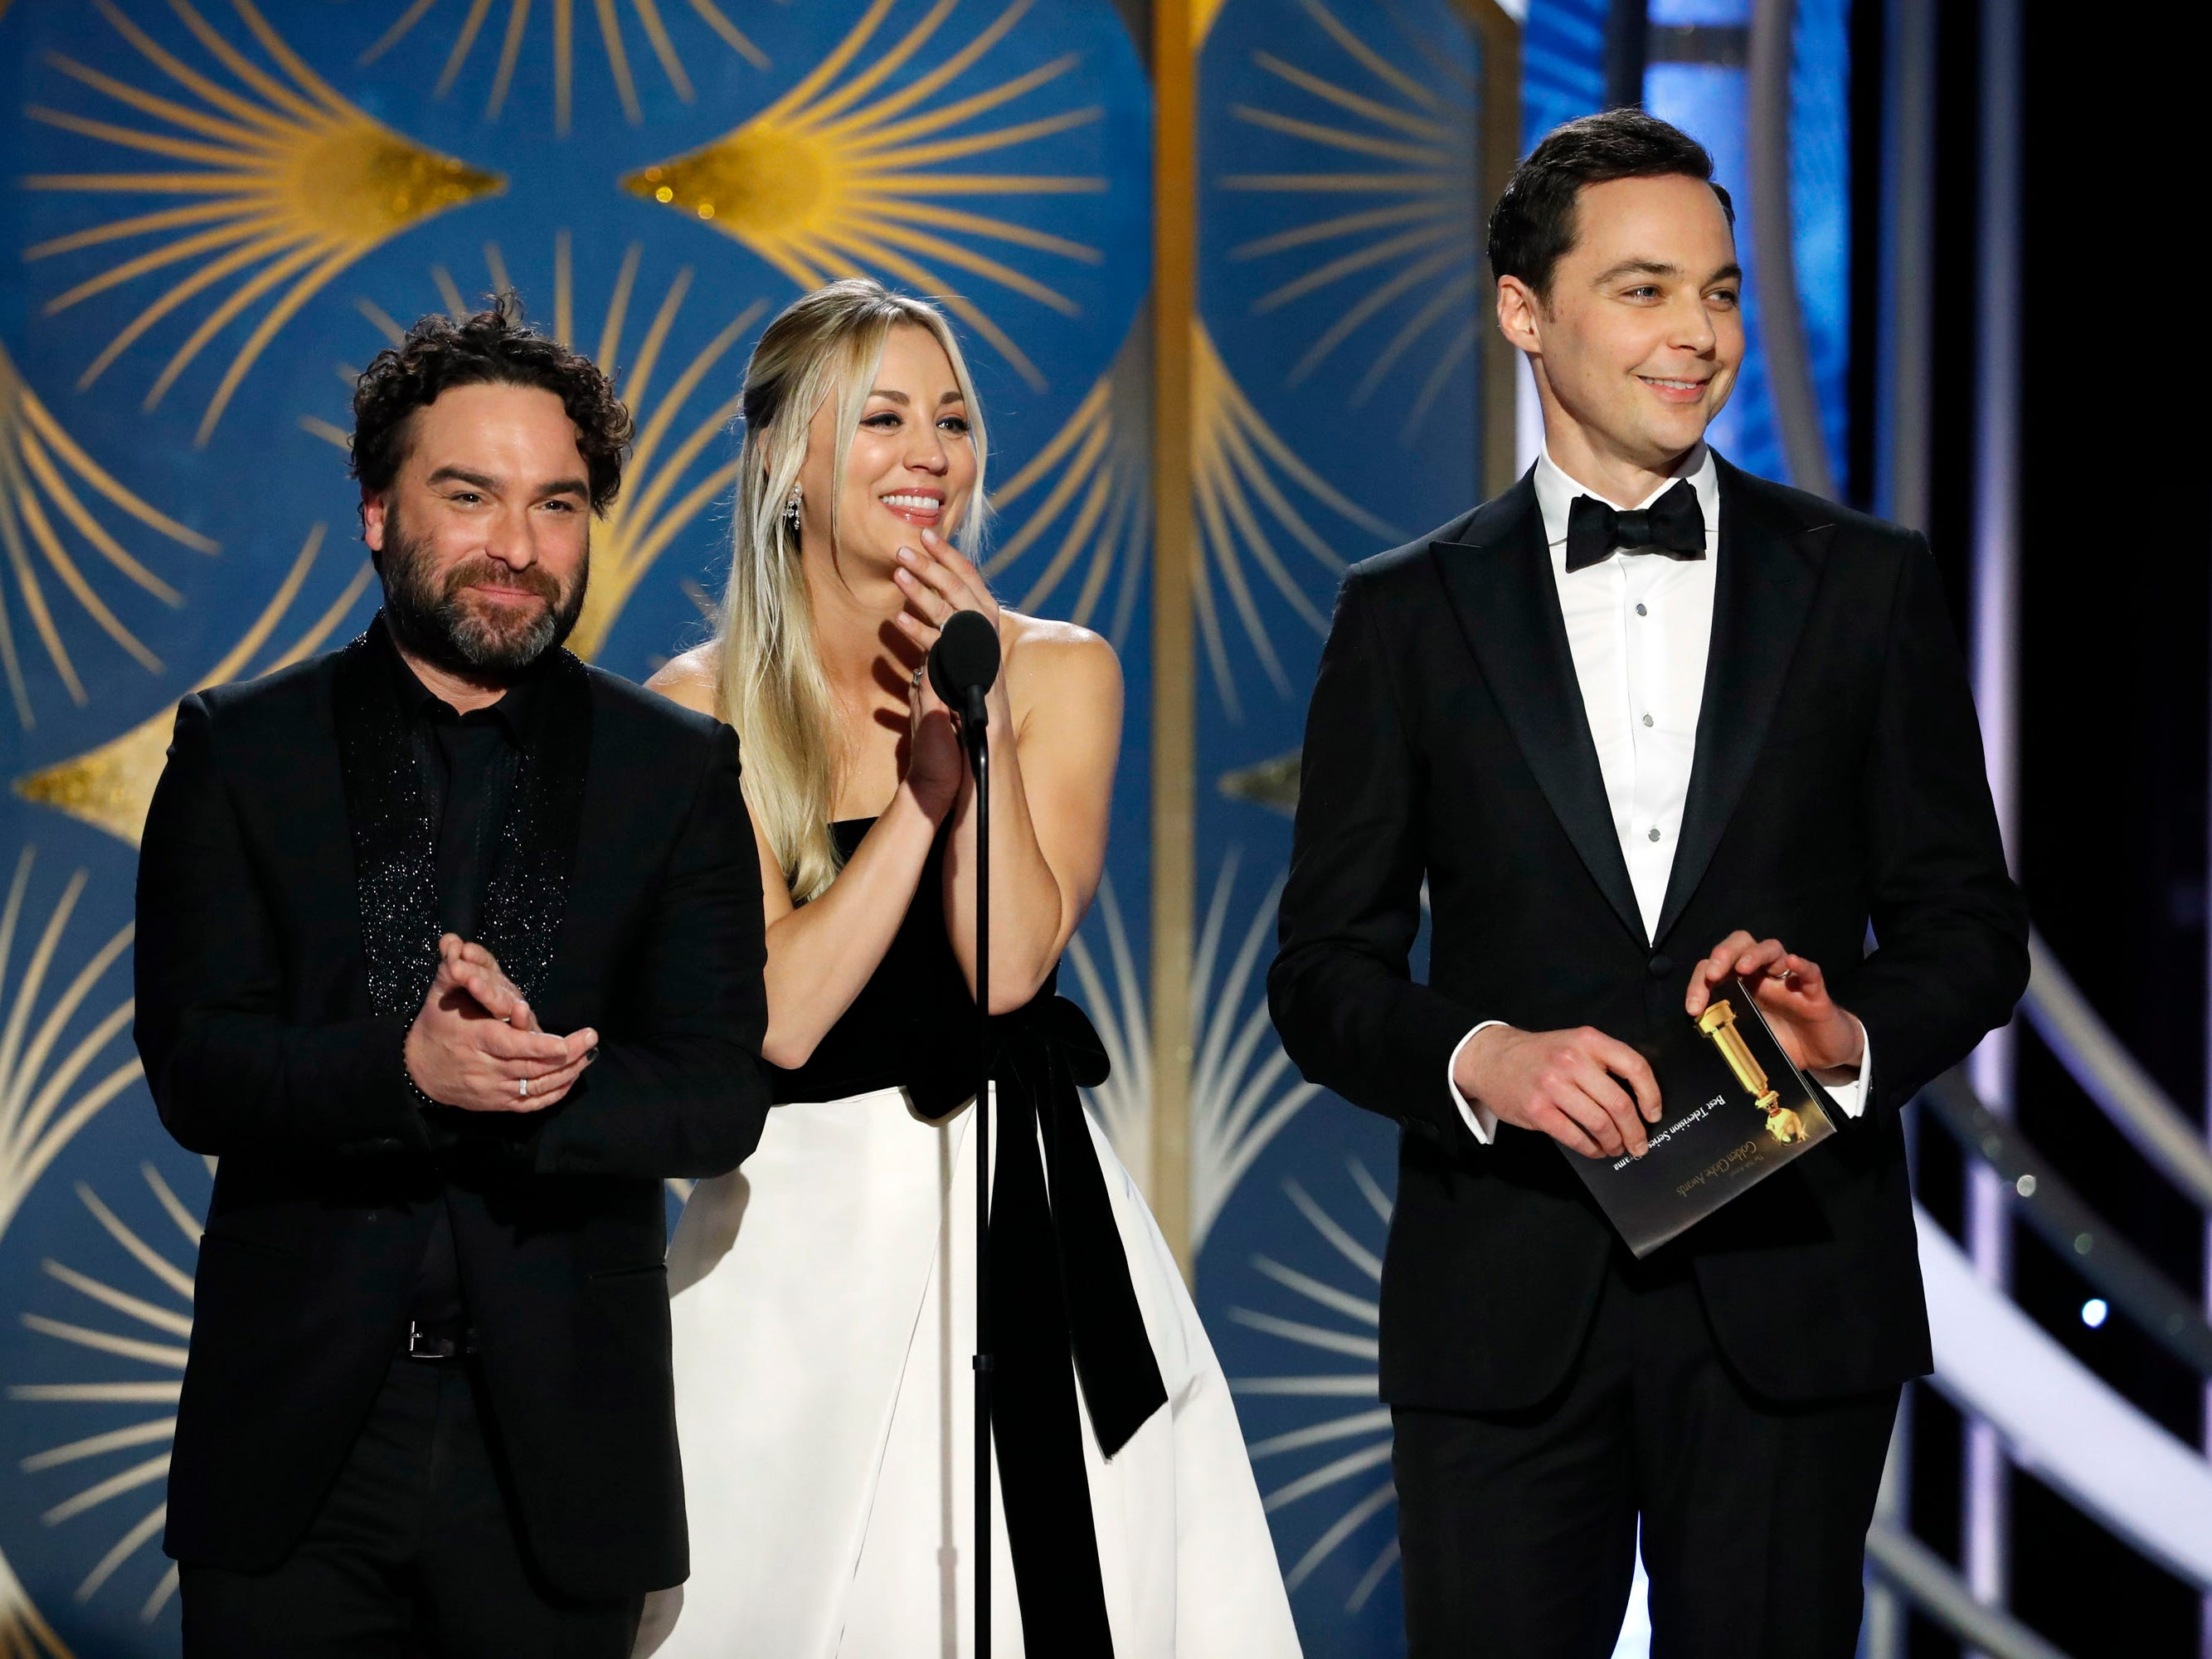 Johnny Galecki, Kelly Cuoco, and Jim Parsons during the Golden Globe Awards.